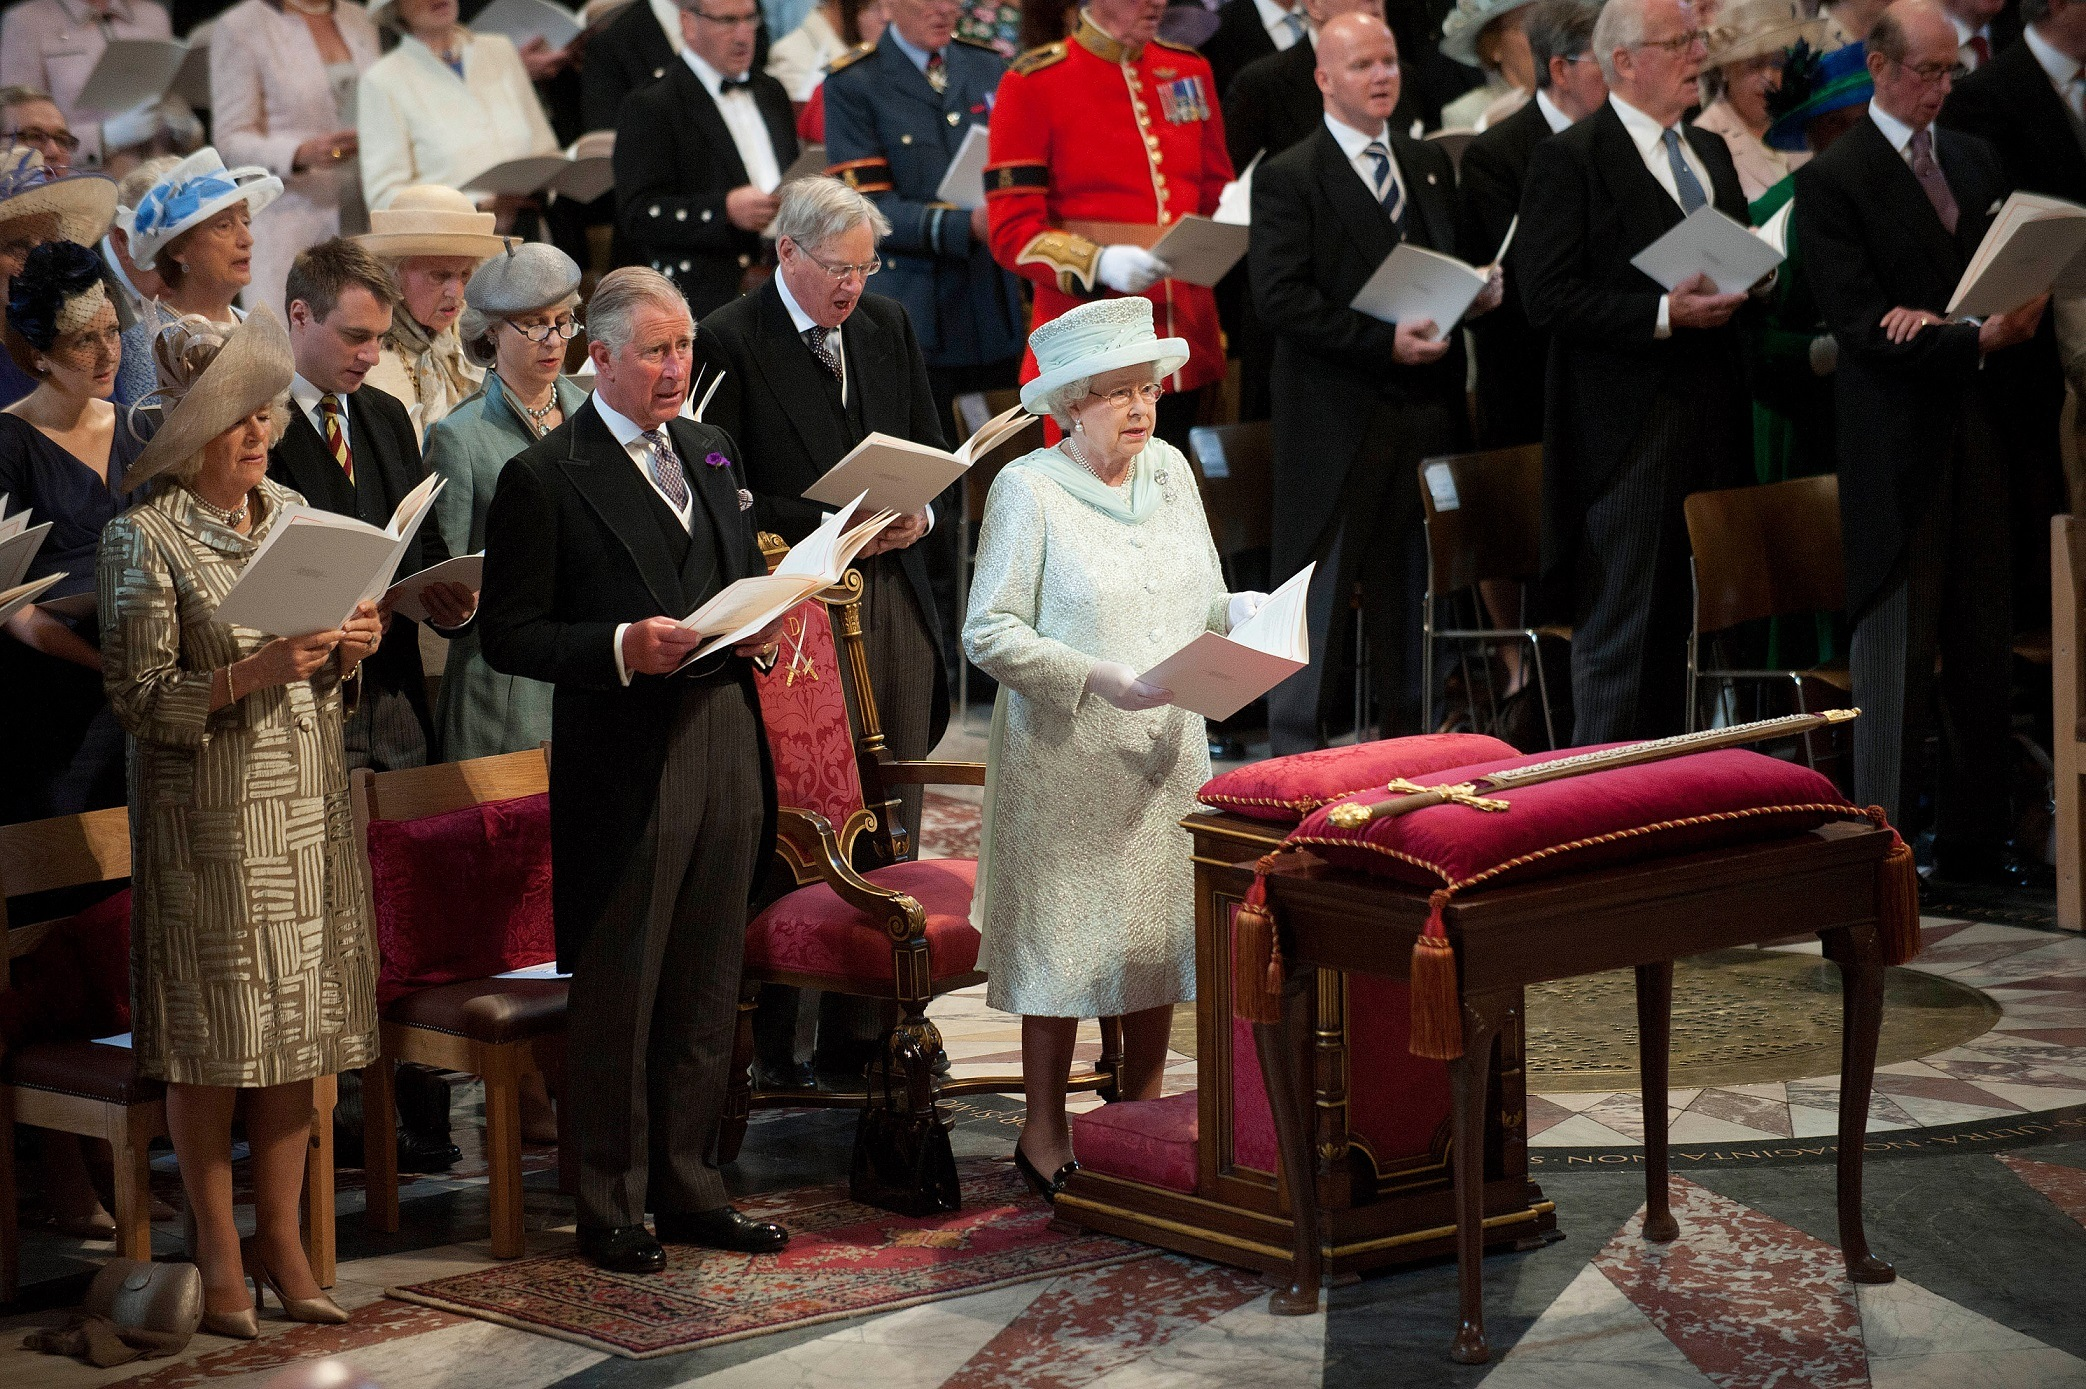 Queen Elizabeth and Royal Family at church